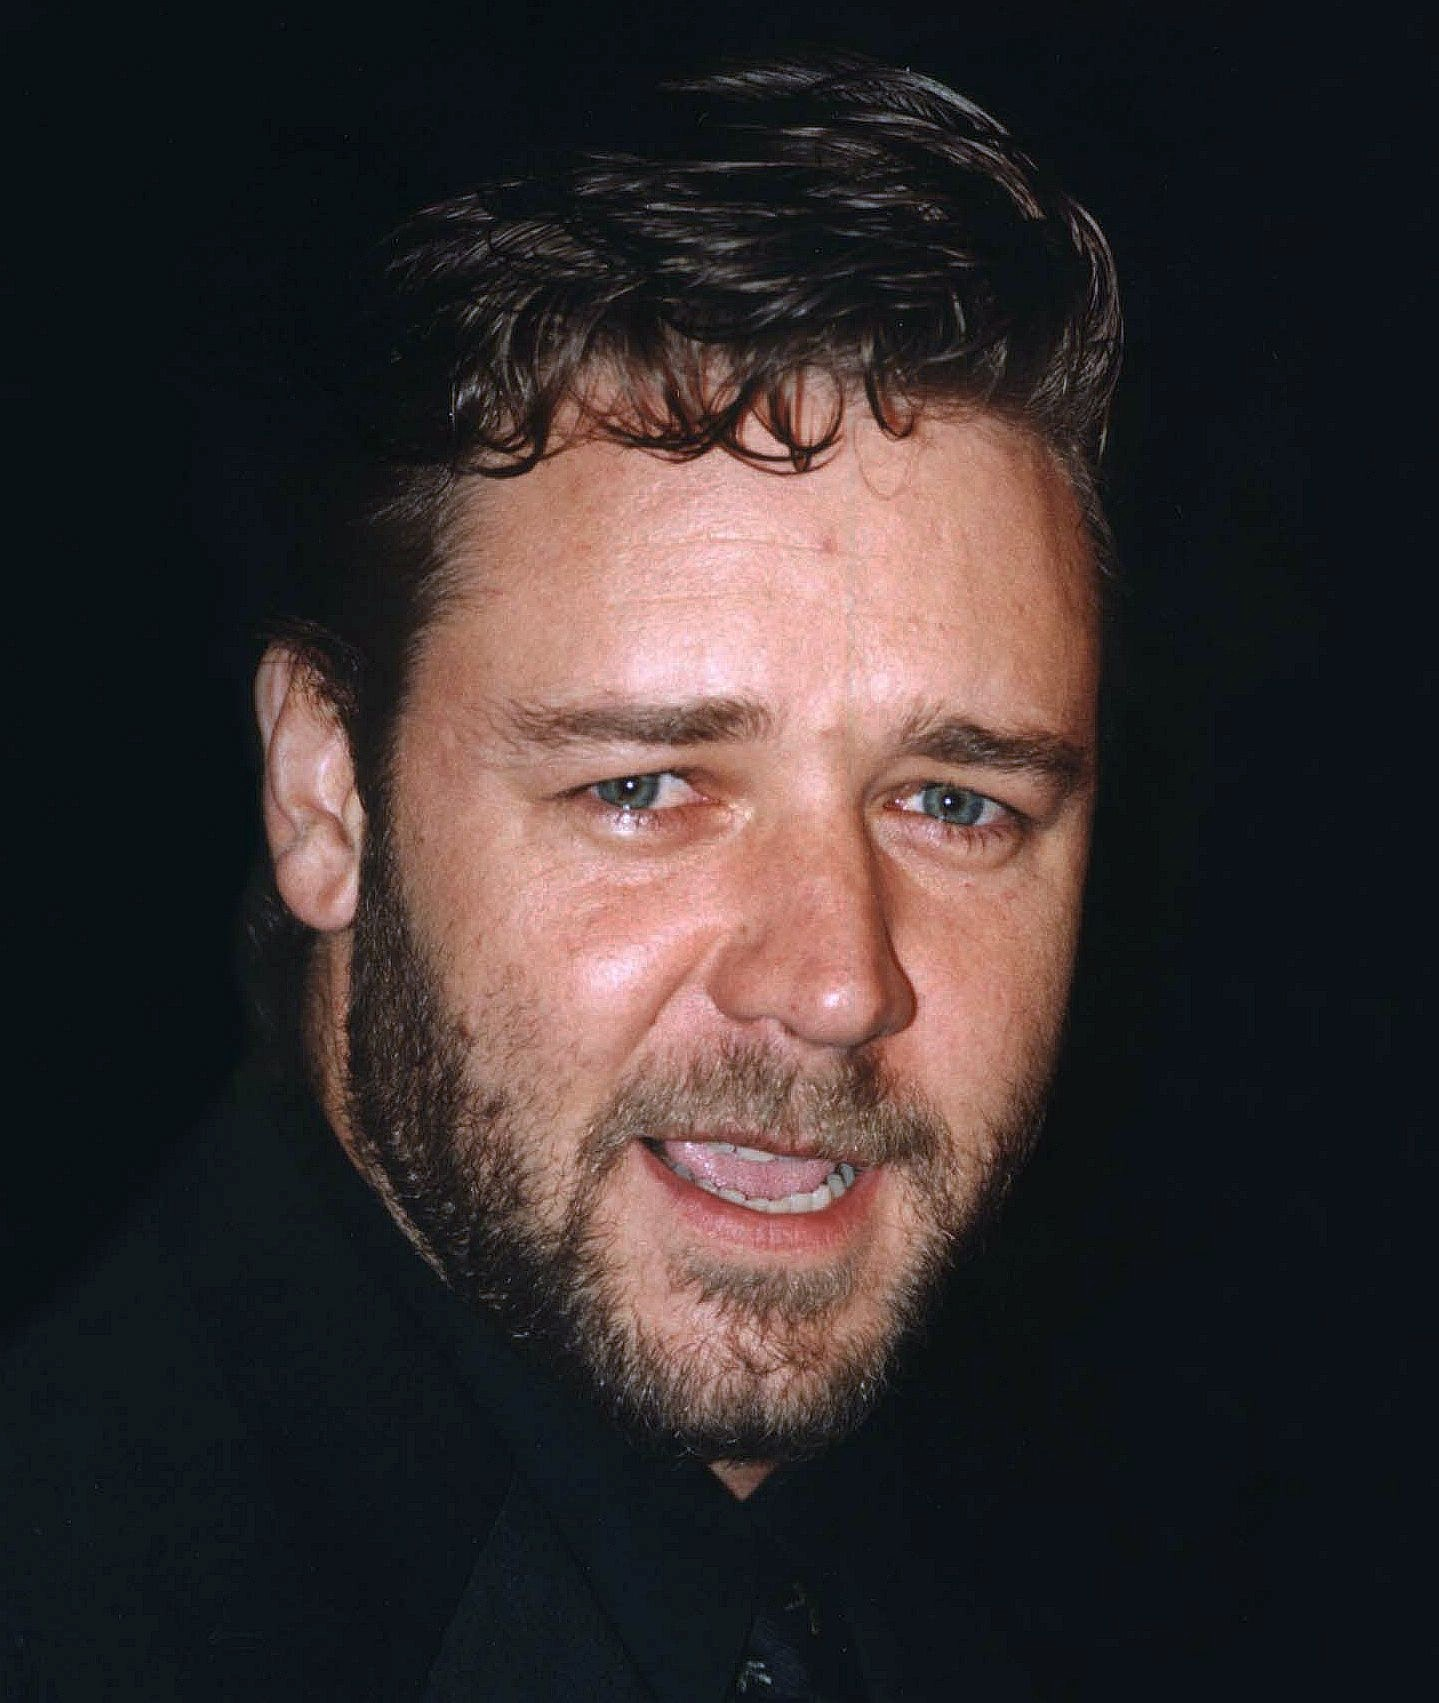 Russell Crowe photo #106670, Russell Crowe image